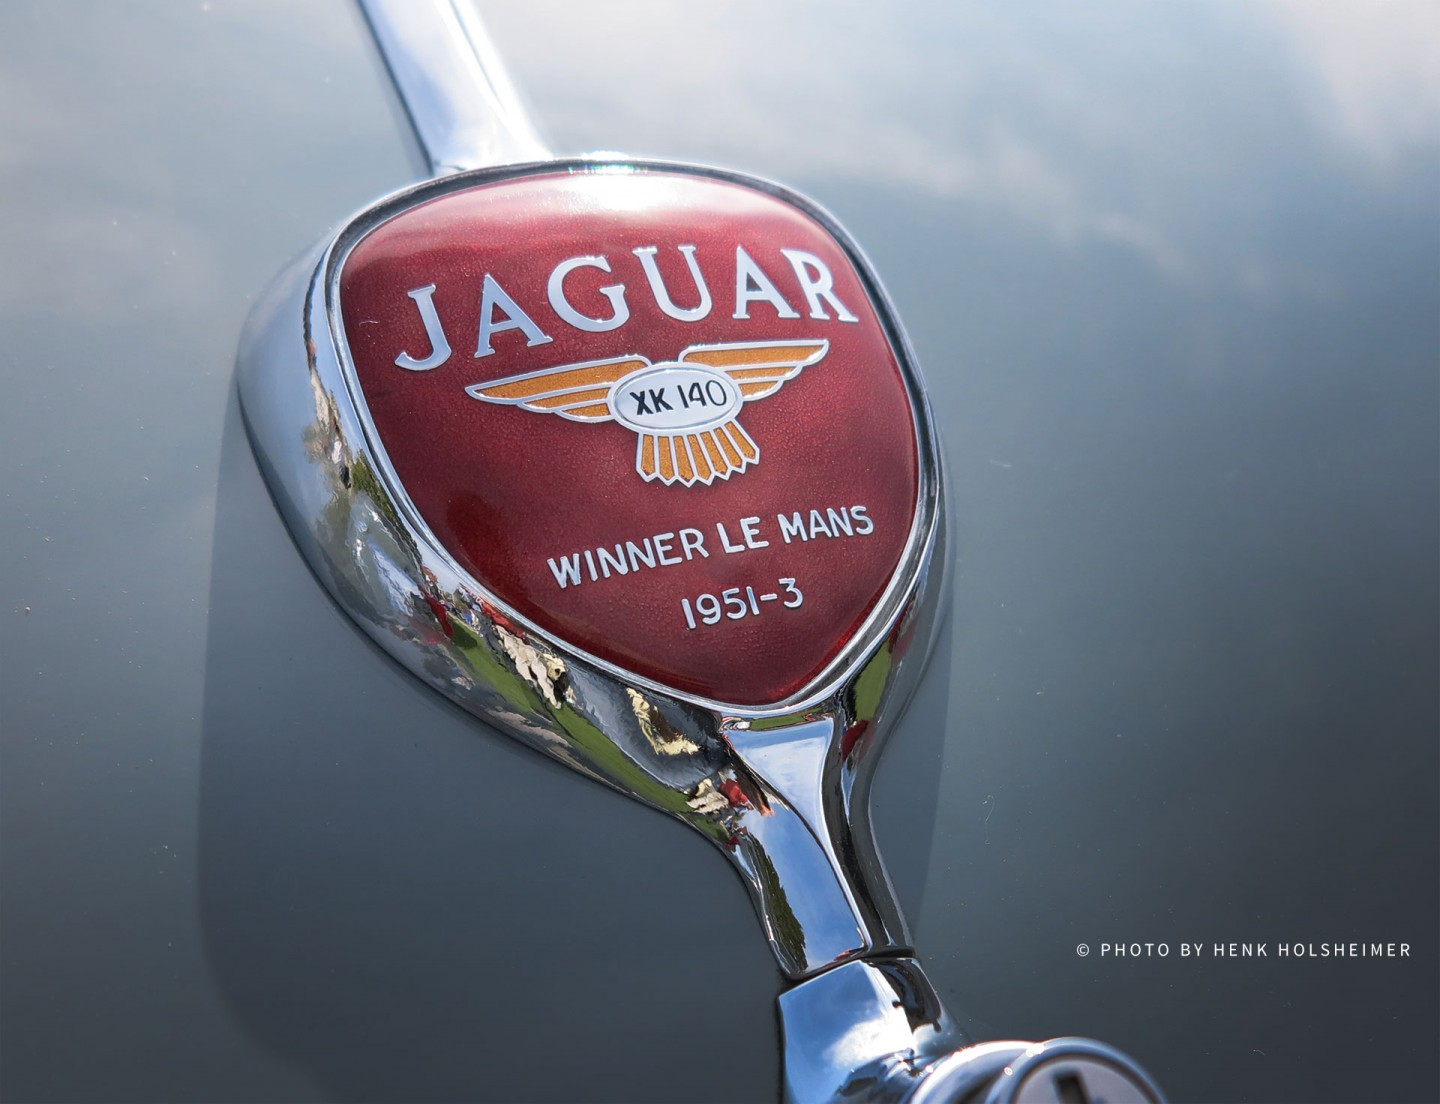 Jaguar XK140 Winner Le Mans 1951-3 Badge